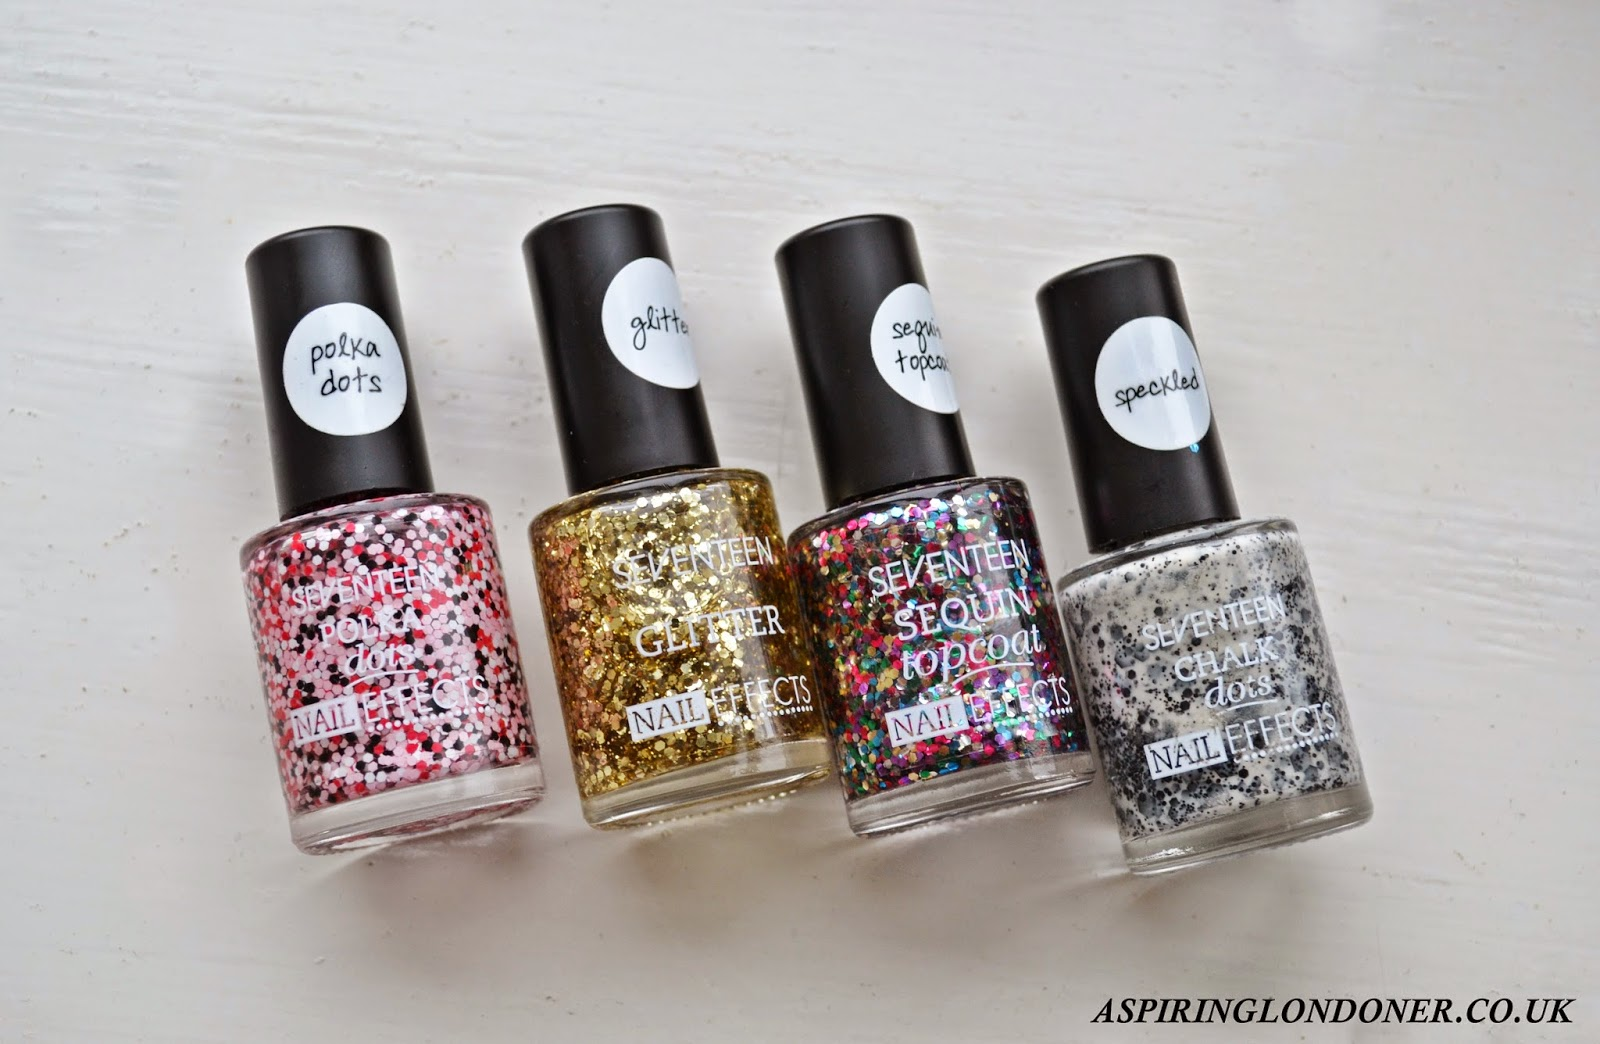 Seventeen Nail Effects Top Coat Limited Edition - Aspiring Londoner